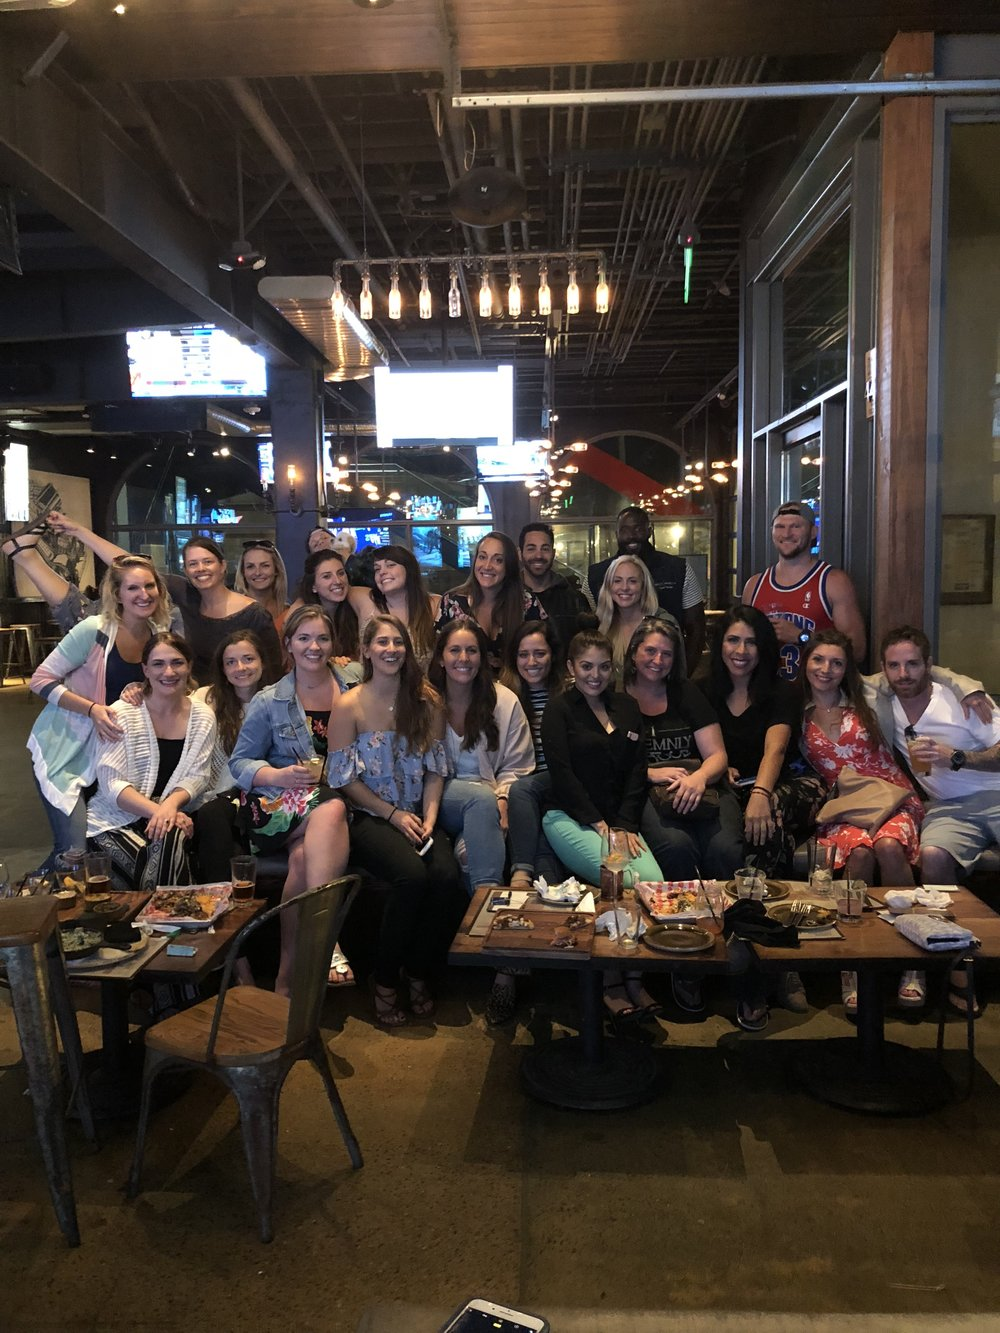 The Hub community - The Hub also hosts a variety of local events to bring the traveling nurse community together. This year, we're headed to the bay area. If you're taking an assignment in the bay, find our fb group The Bay Area Hub